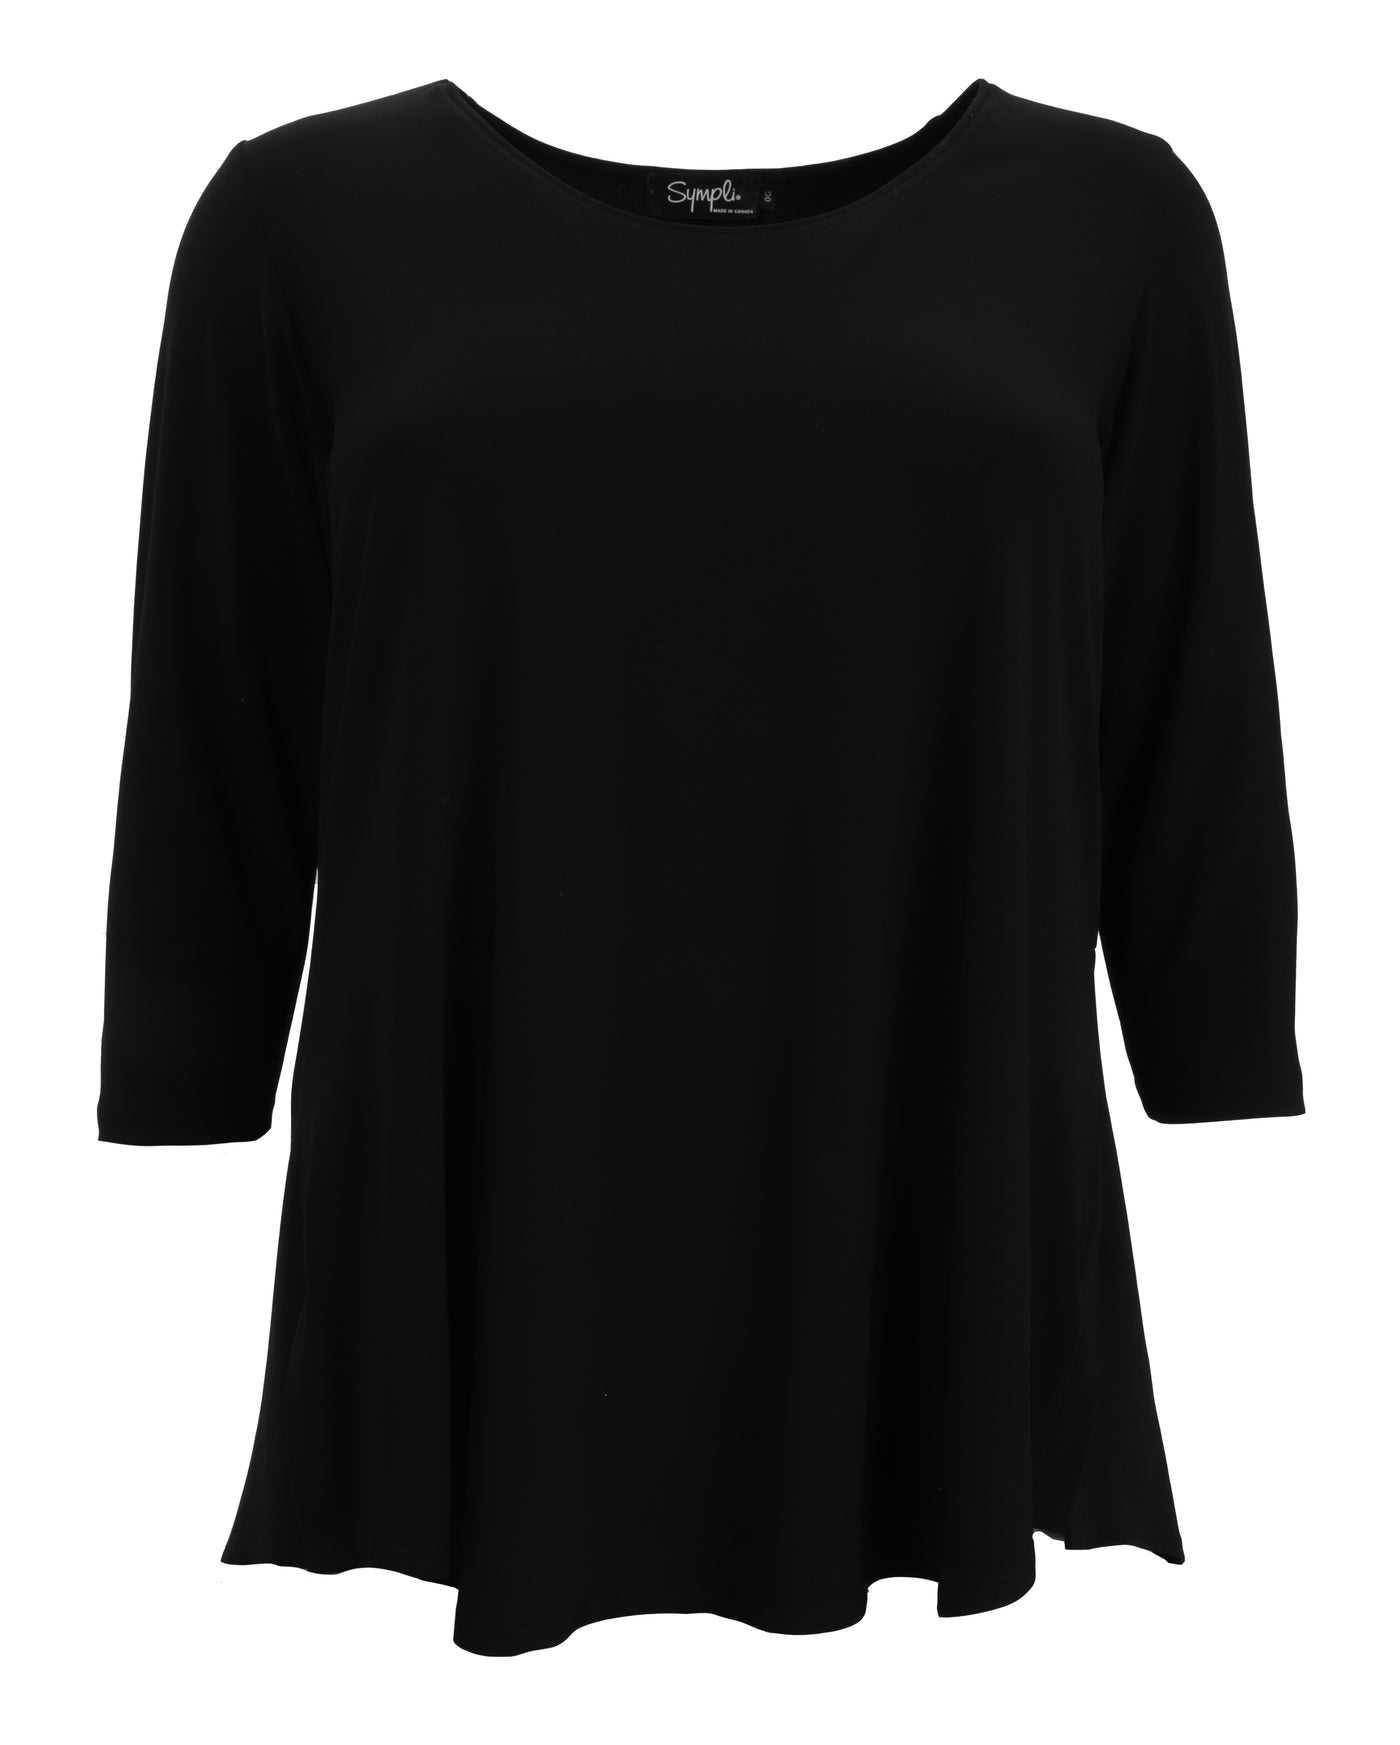 Sympli Go To Classic Relax T-Shirt with 3/4 Sleeve in Black